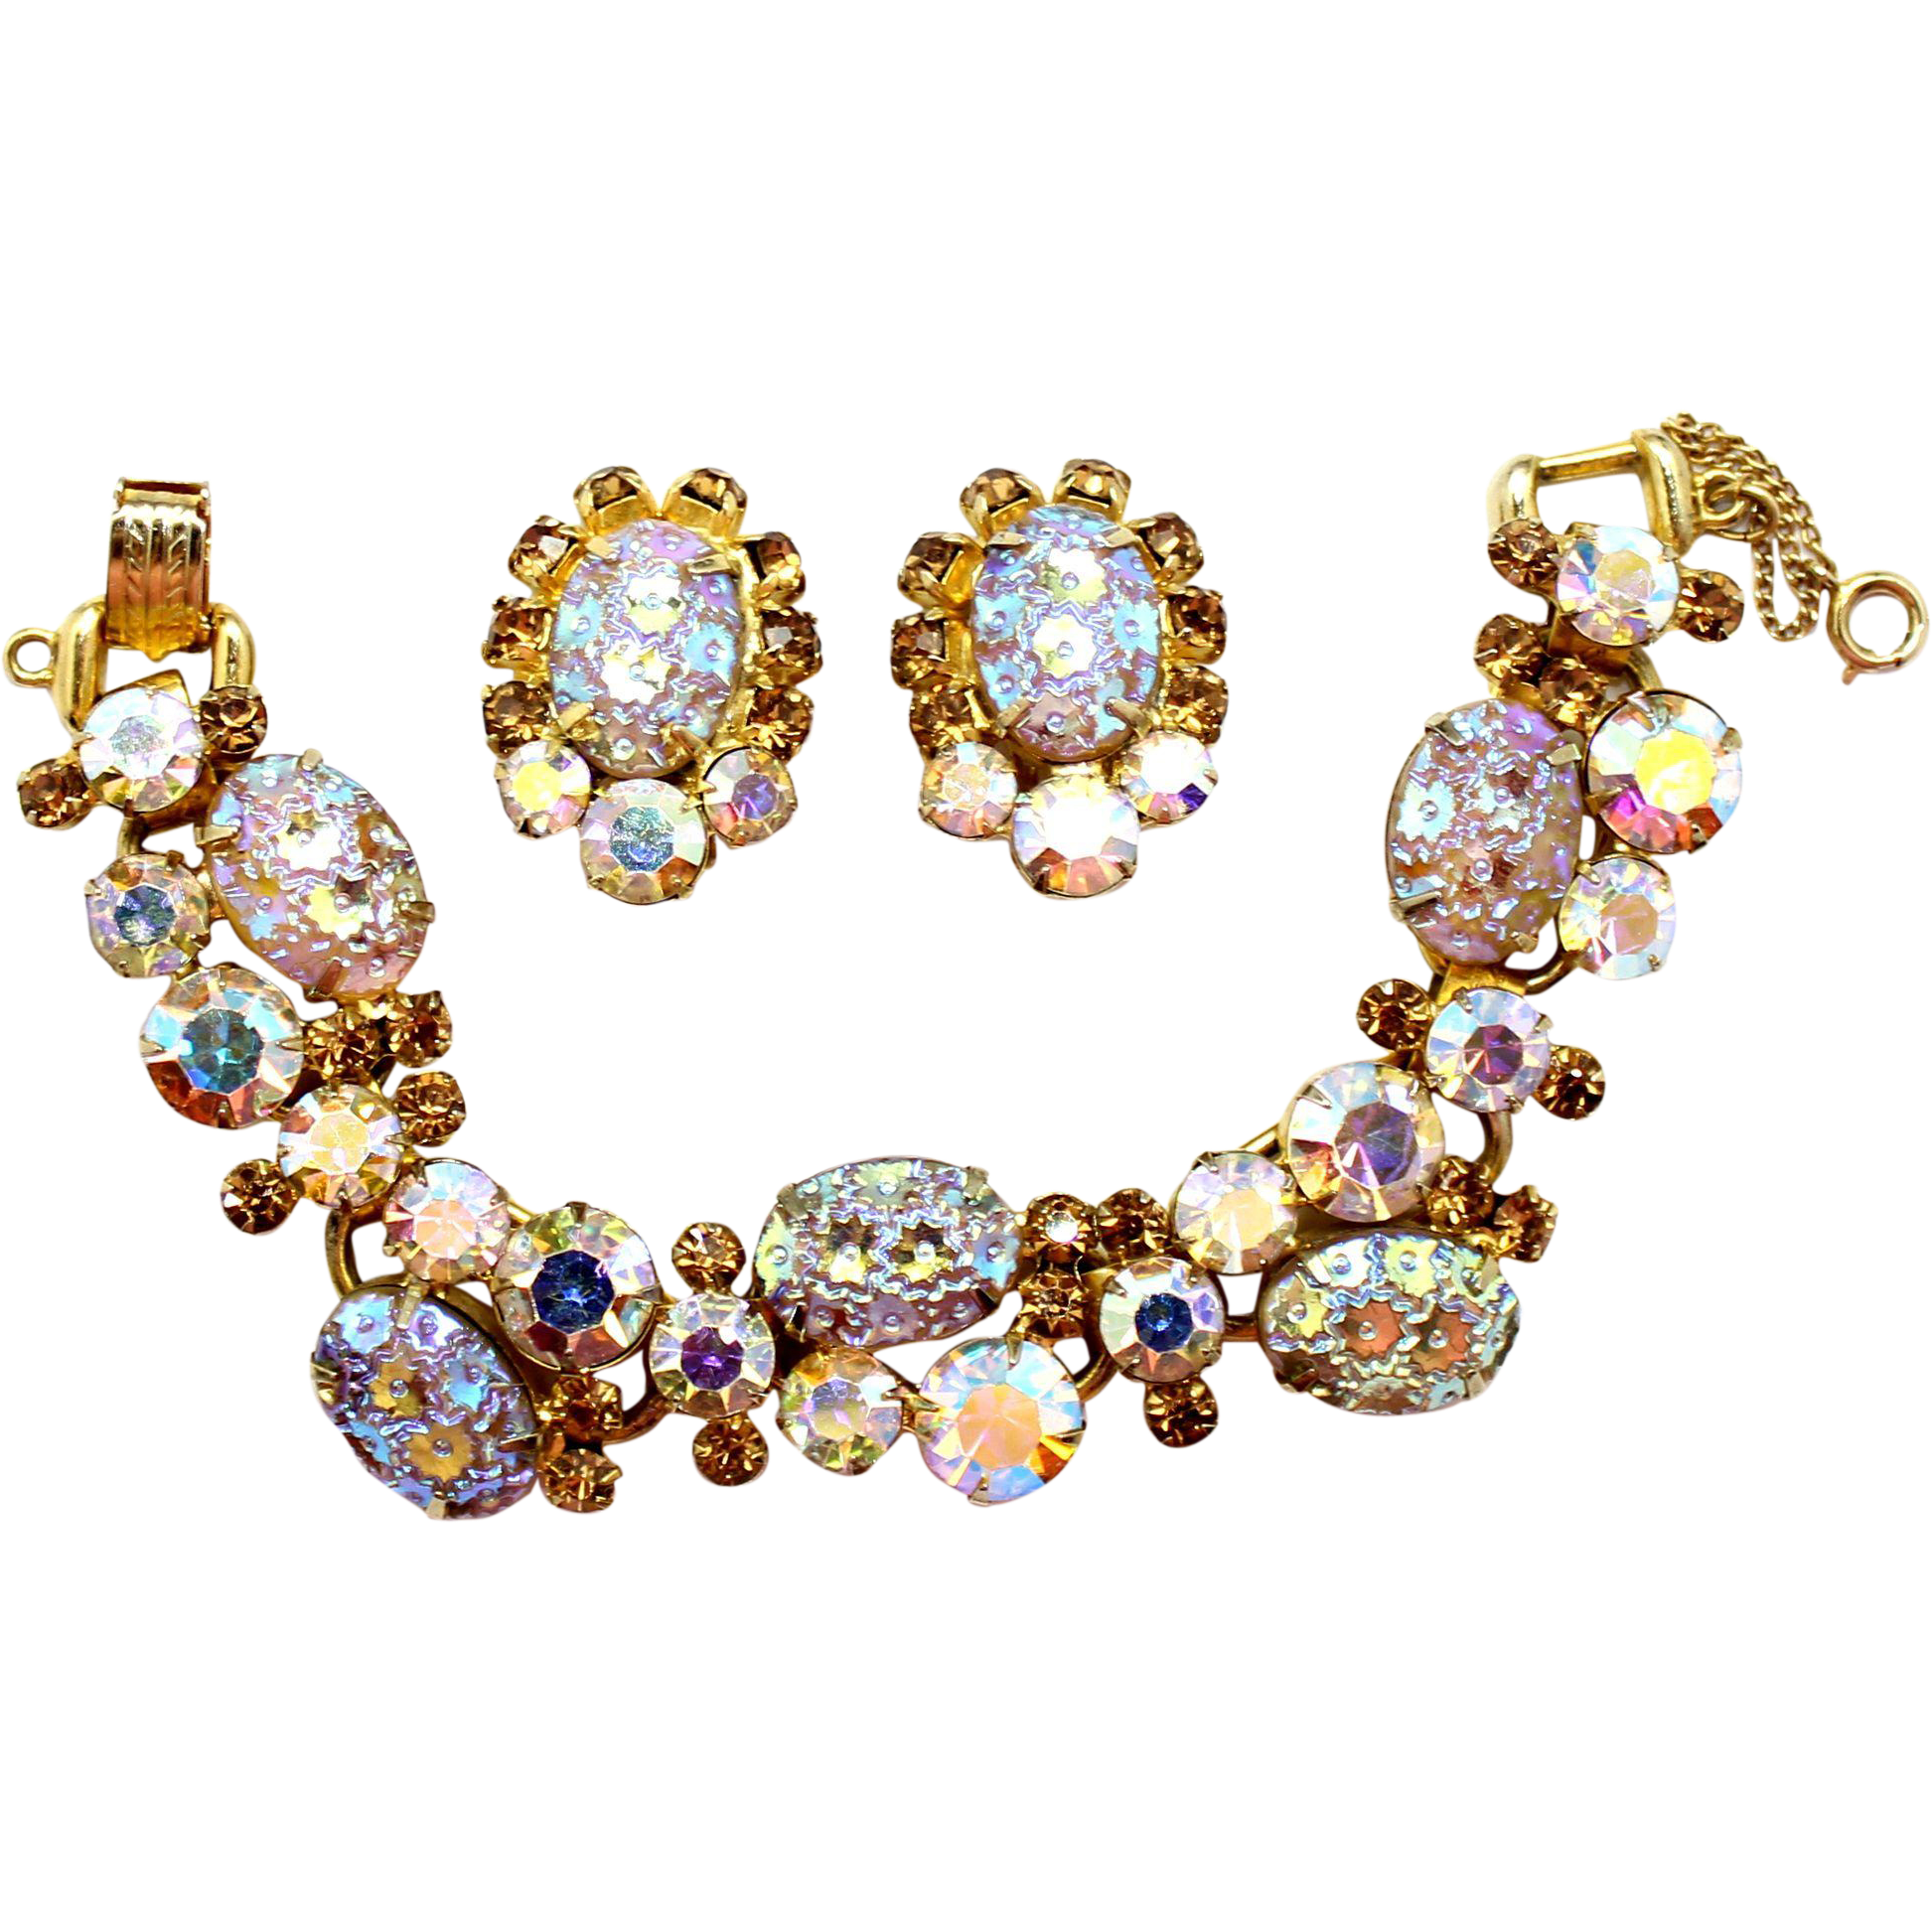 Vintage Juliana (D and E) Book Piece Topaz Rhinestone Floral Pressed Glass and Rhinestone Bracelet and Earrings Demi Parure